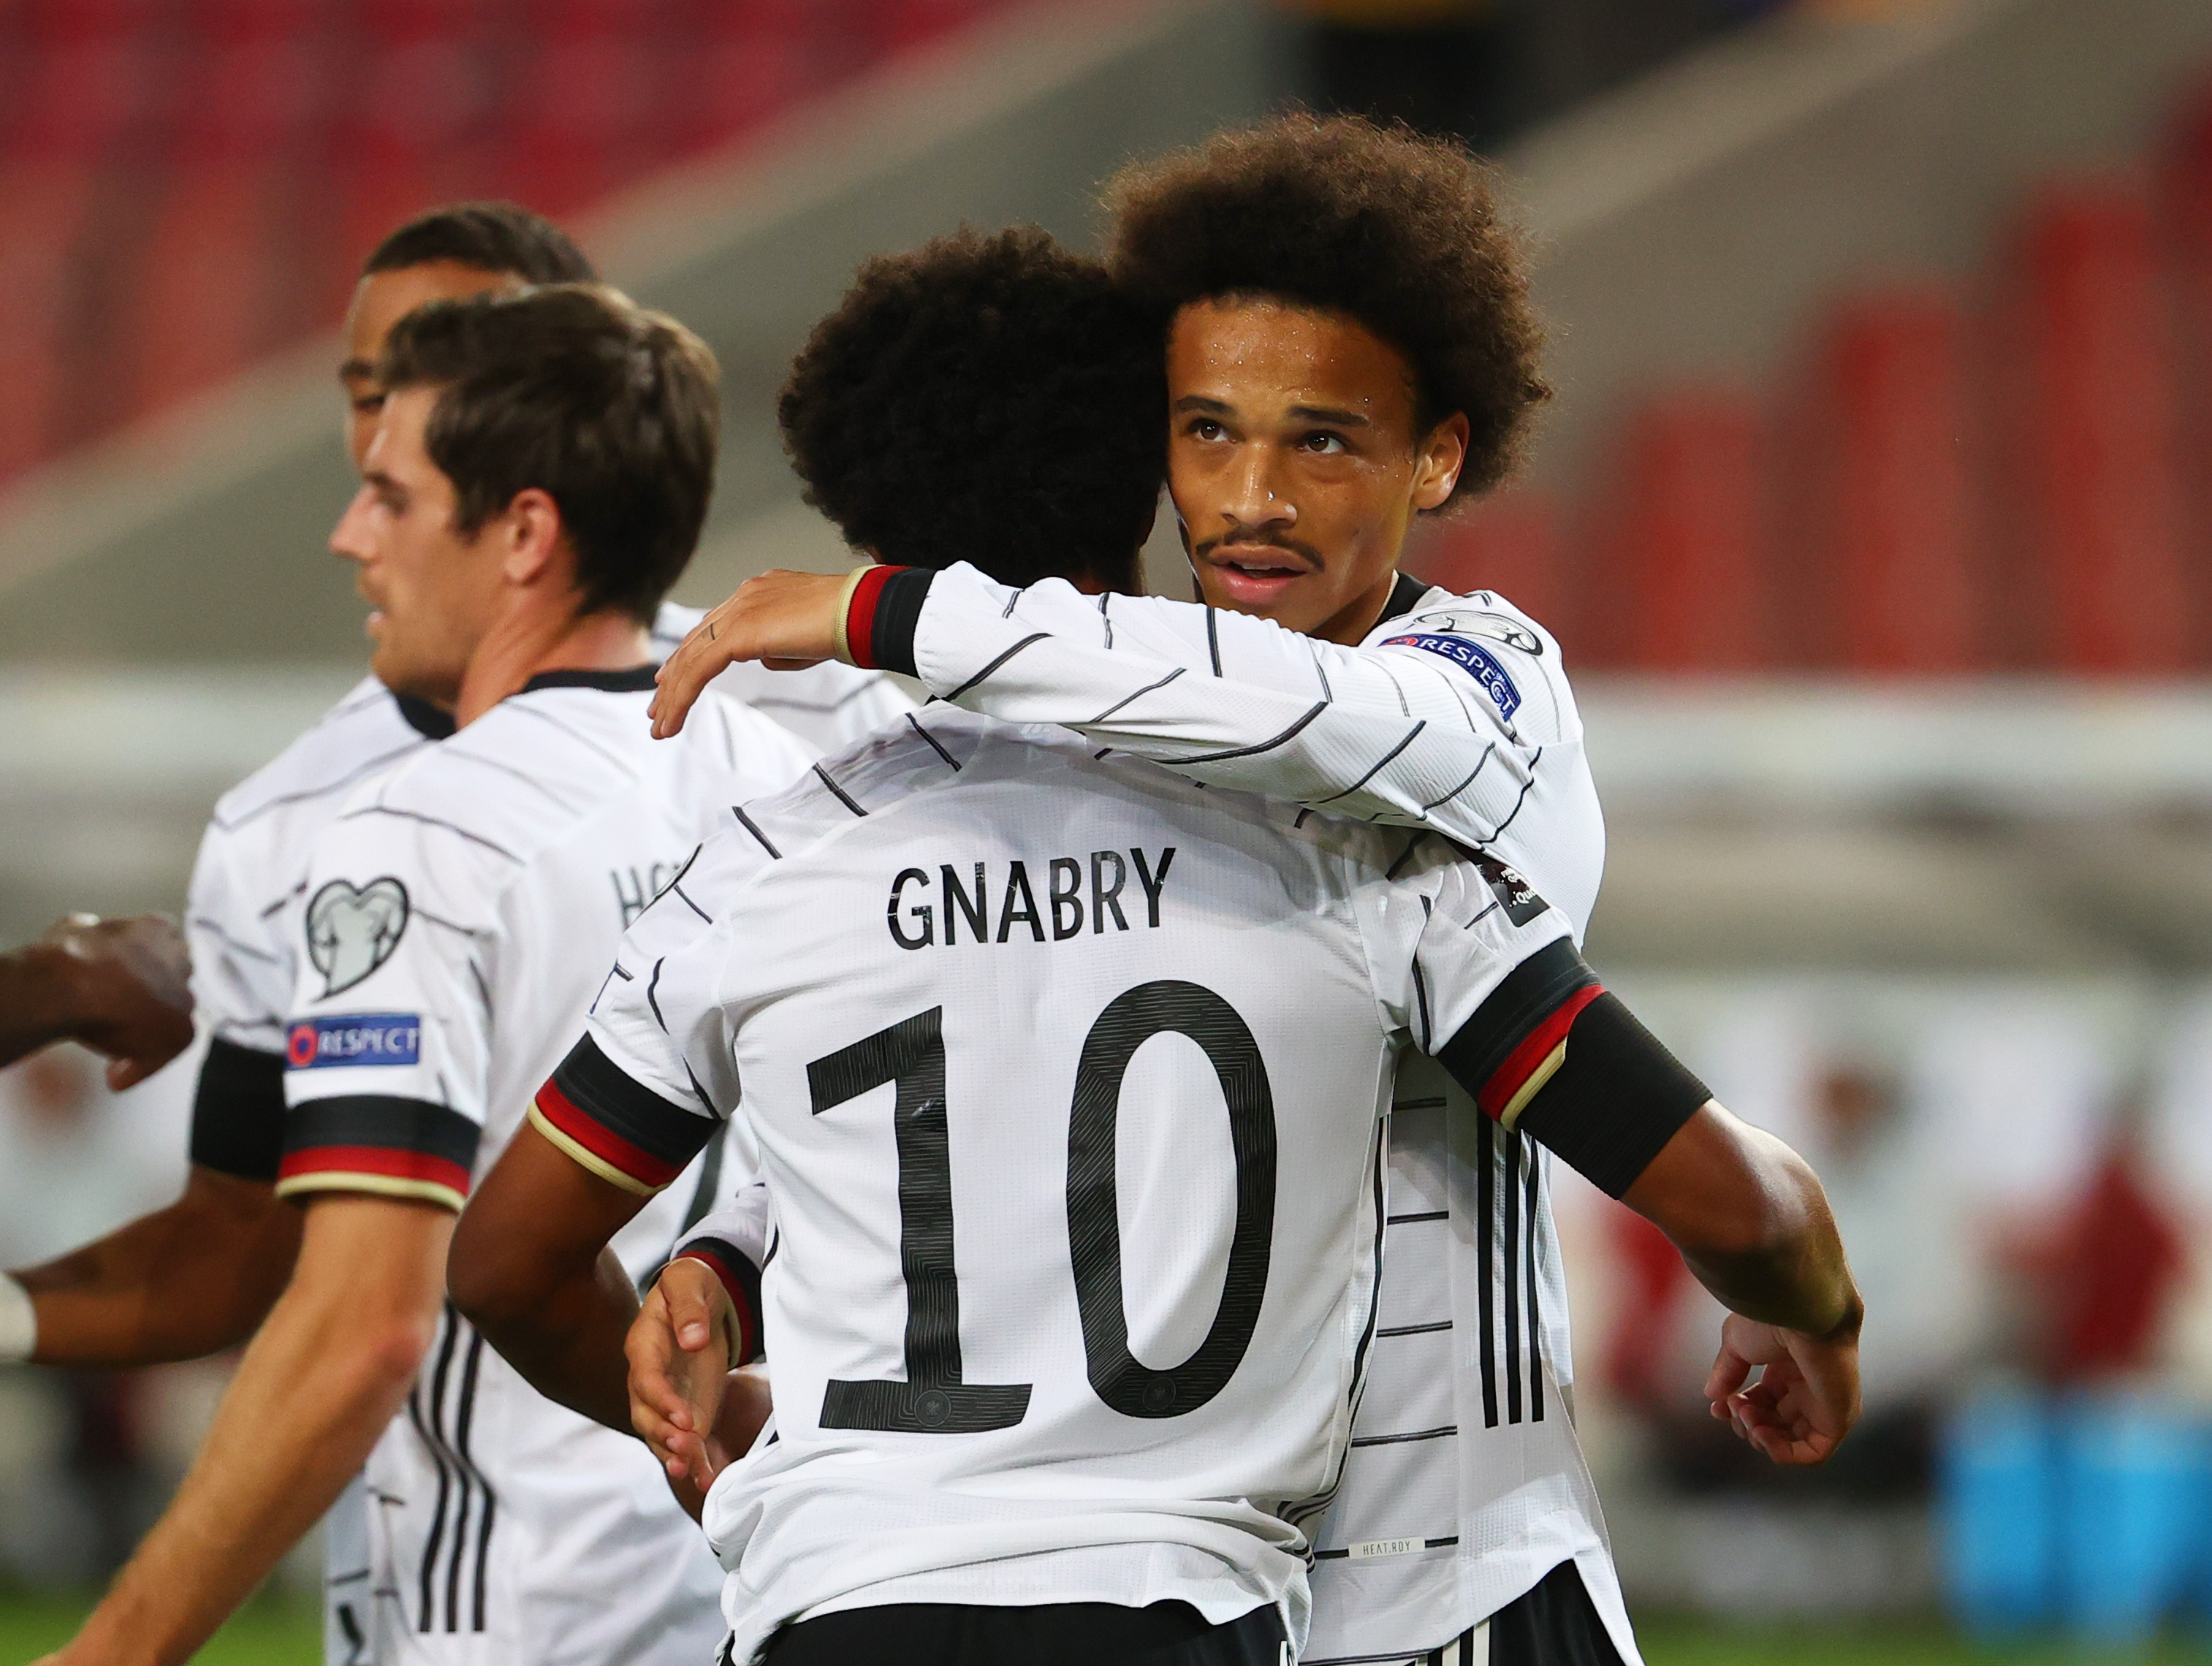 Soccer Football - World Cup - UEFA Qualifiers - Group J - Germany v Armenia - Mercedes-Benz Arena, Stuttgart, Germany - September 5, 2021  Germany's Serge Gnabry celebrates scoring their second goal with Leroy Sane REUTERS/Kai Pfaffenbach